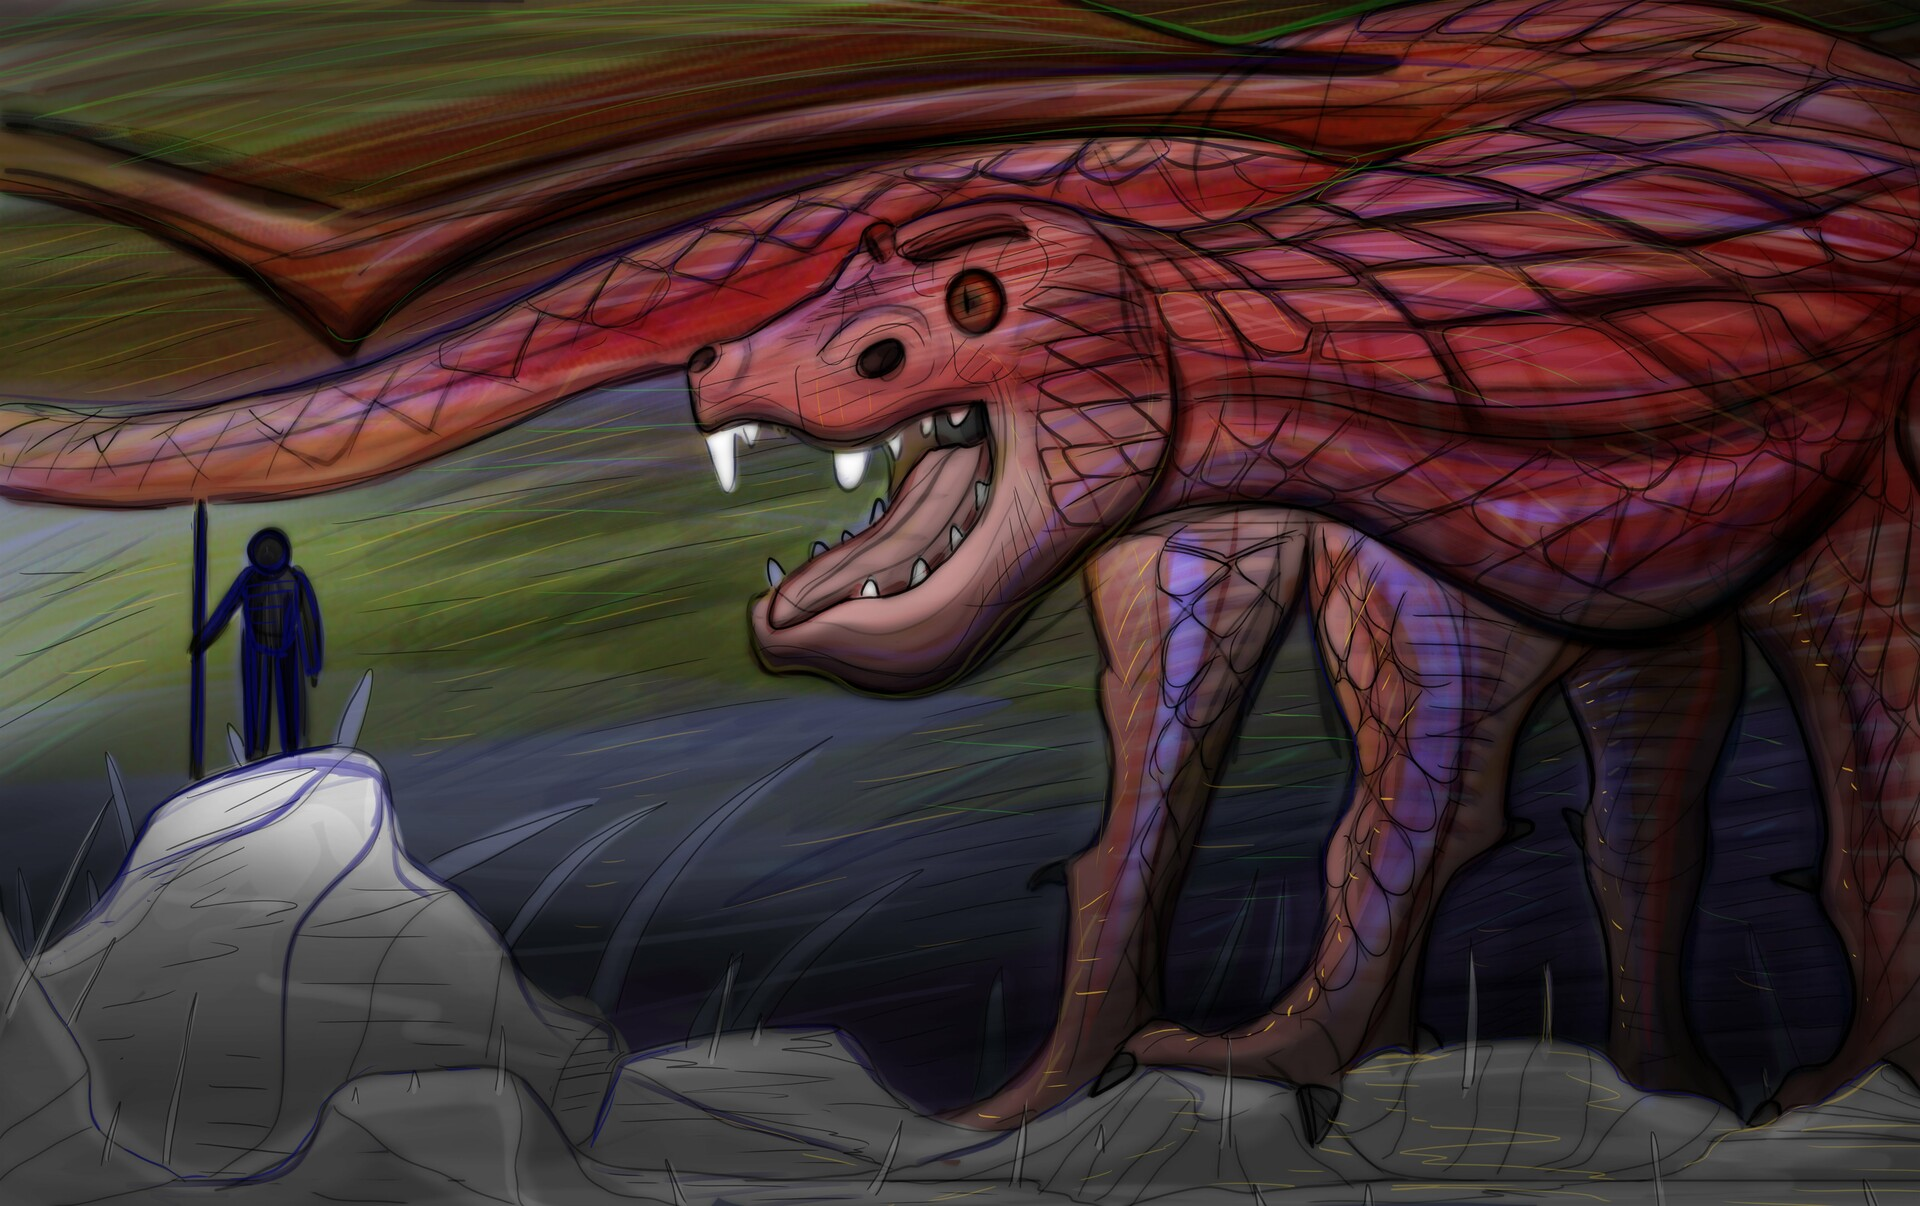 Looking the dragon in the eye